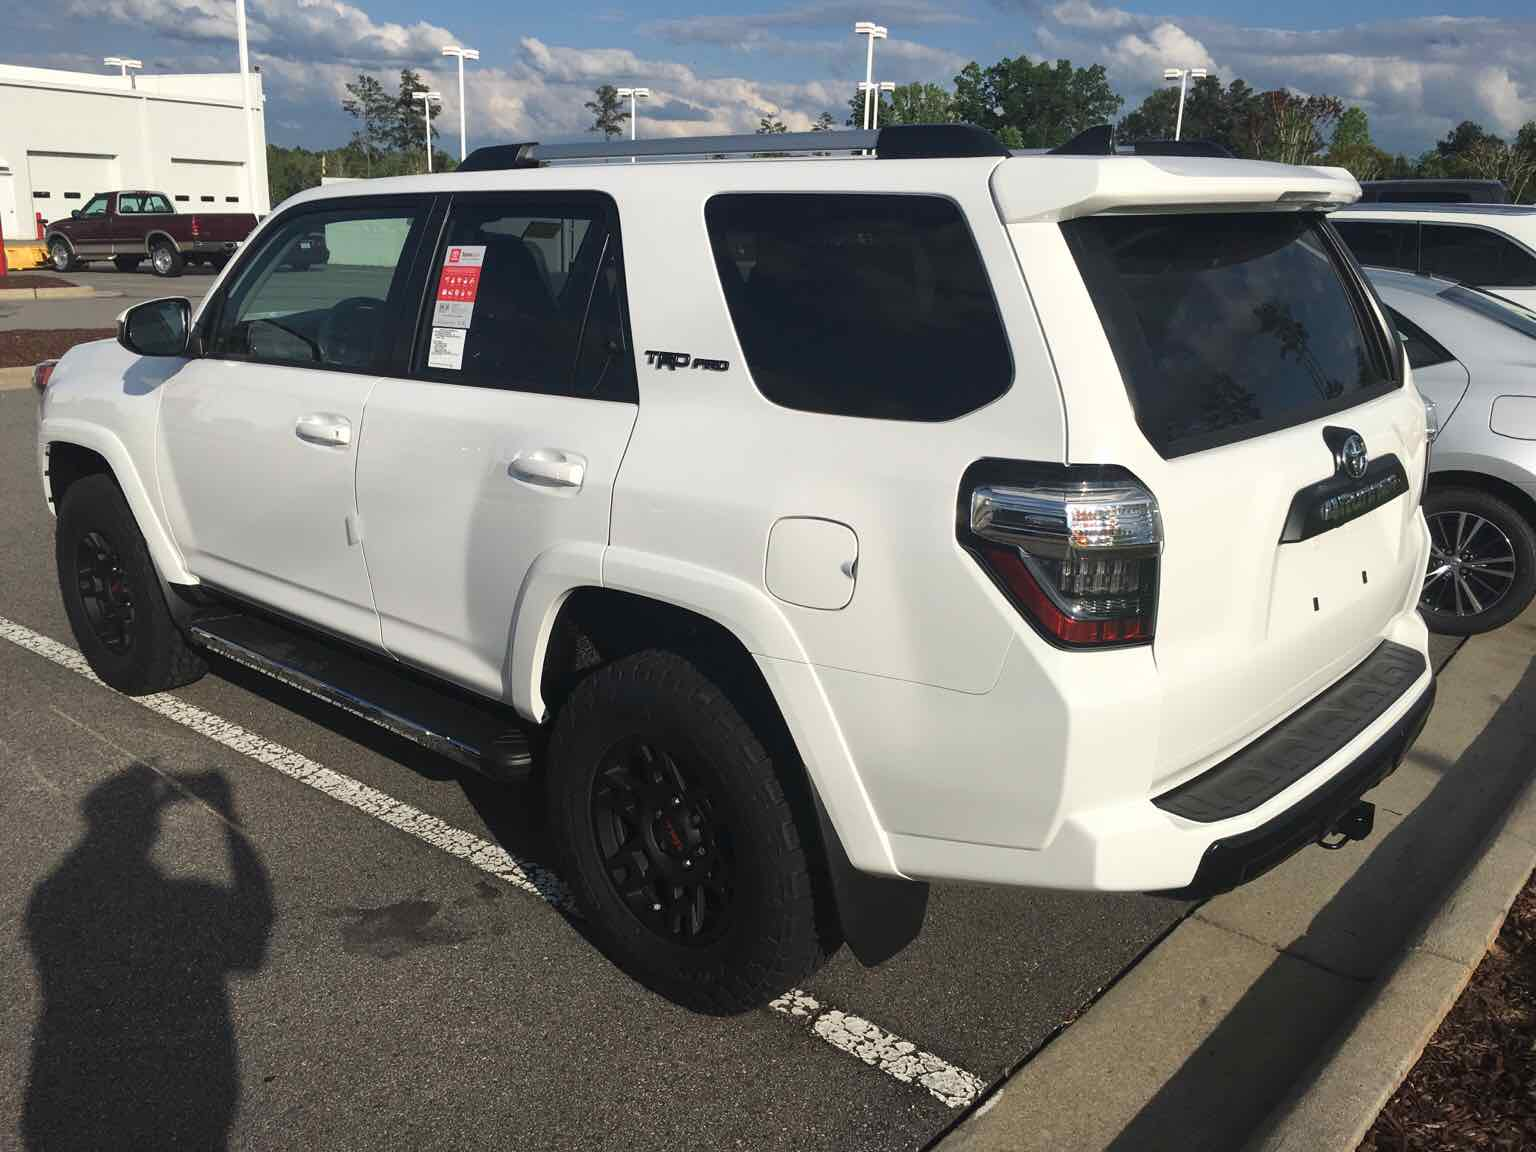 fs 2016 toyota 4runner trd pro white toyota 4runner forum largest 4runner forum. Black Bedroom Furniture Sets. Home Design Ideas